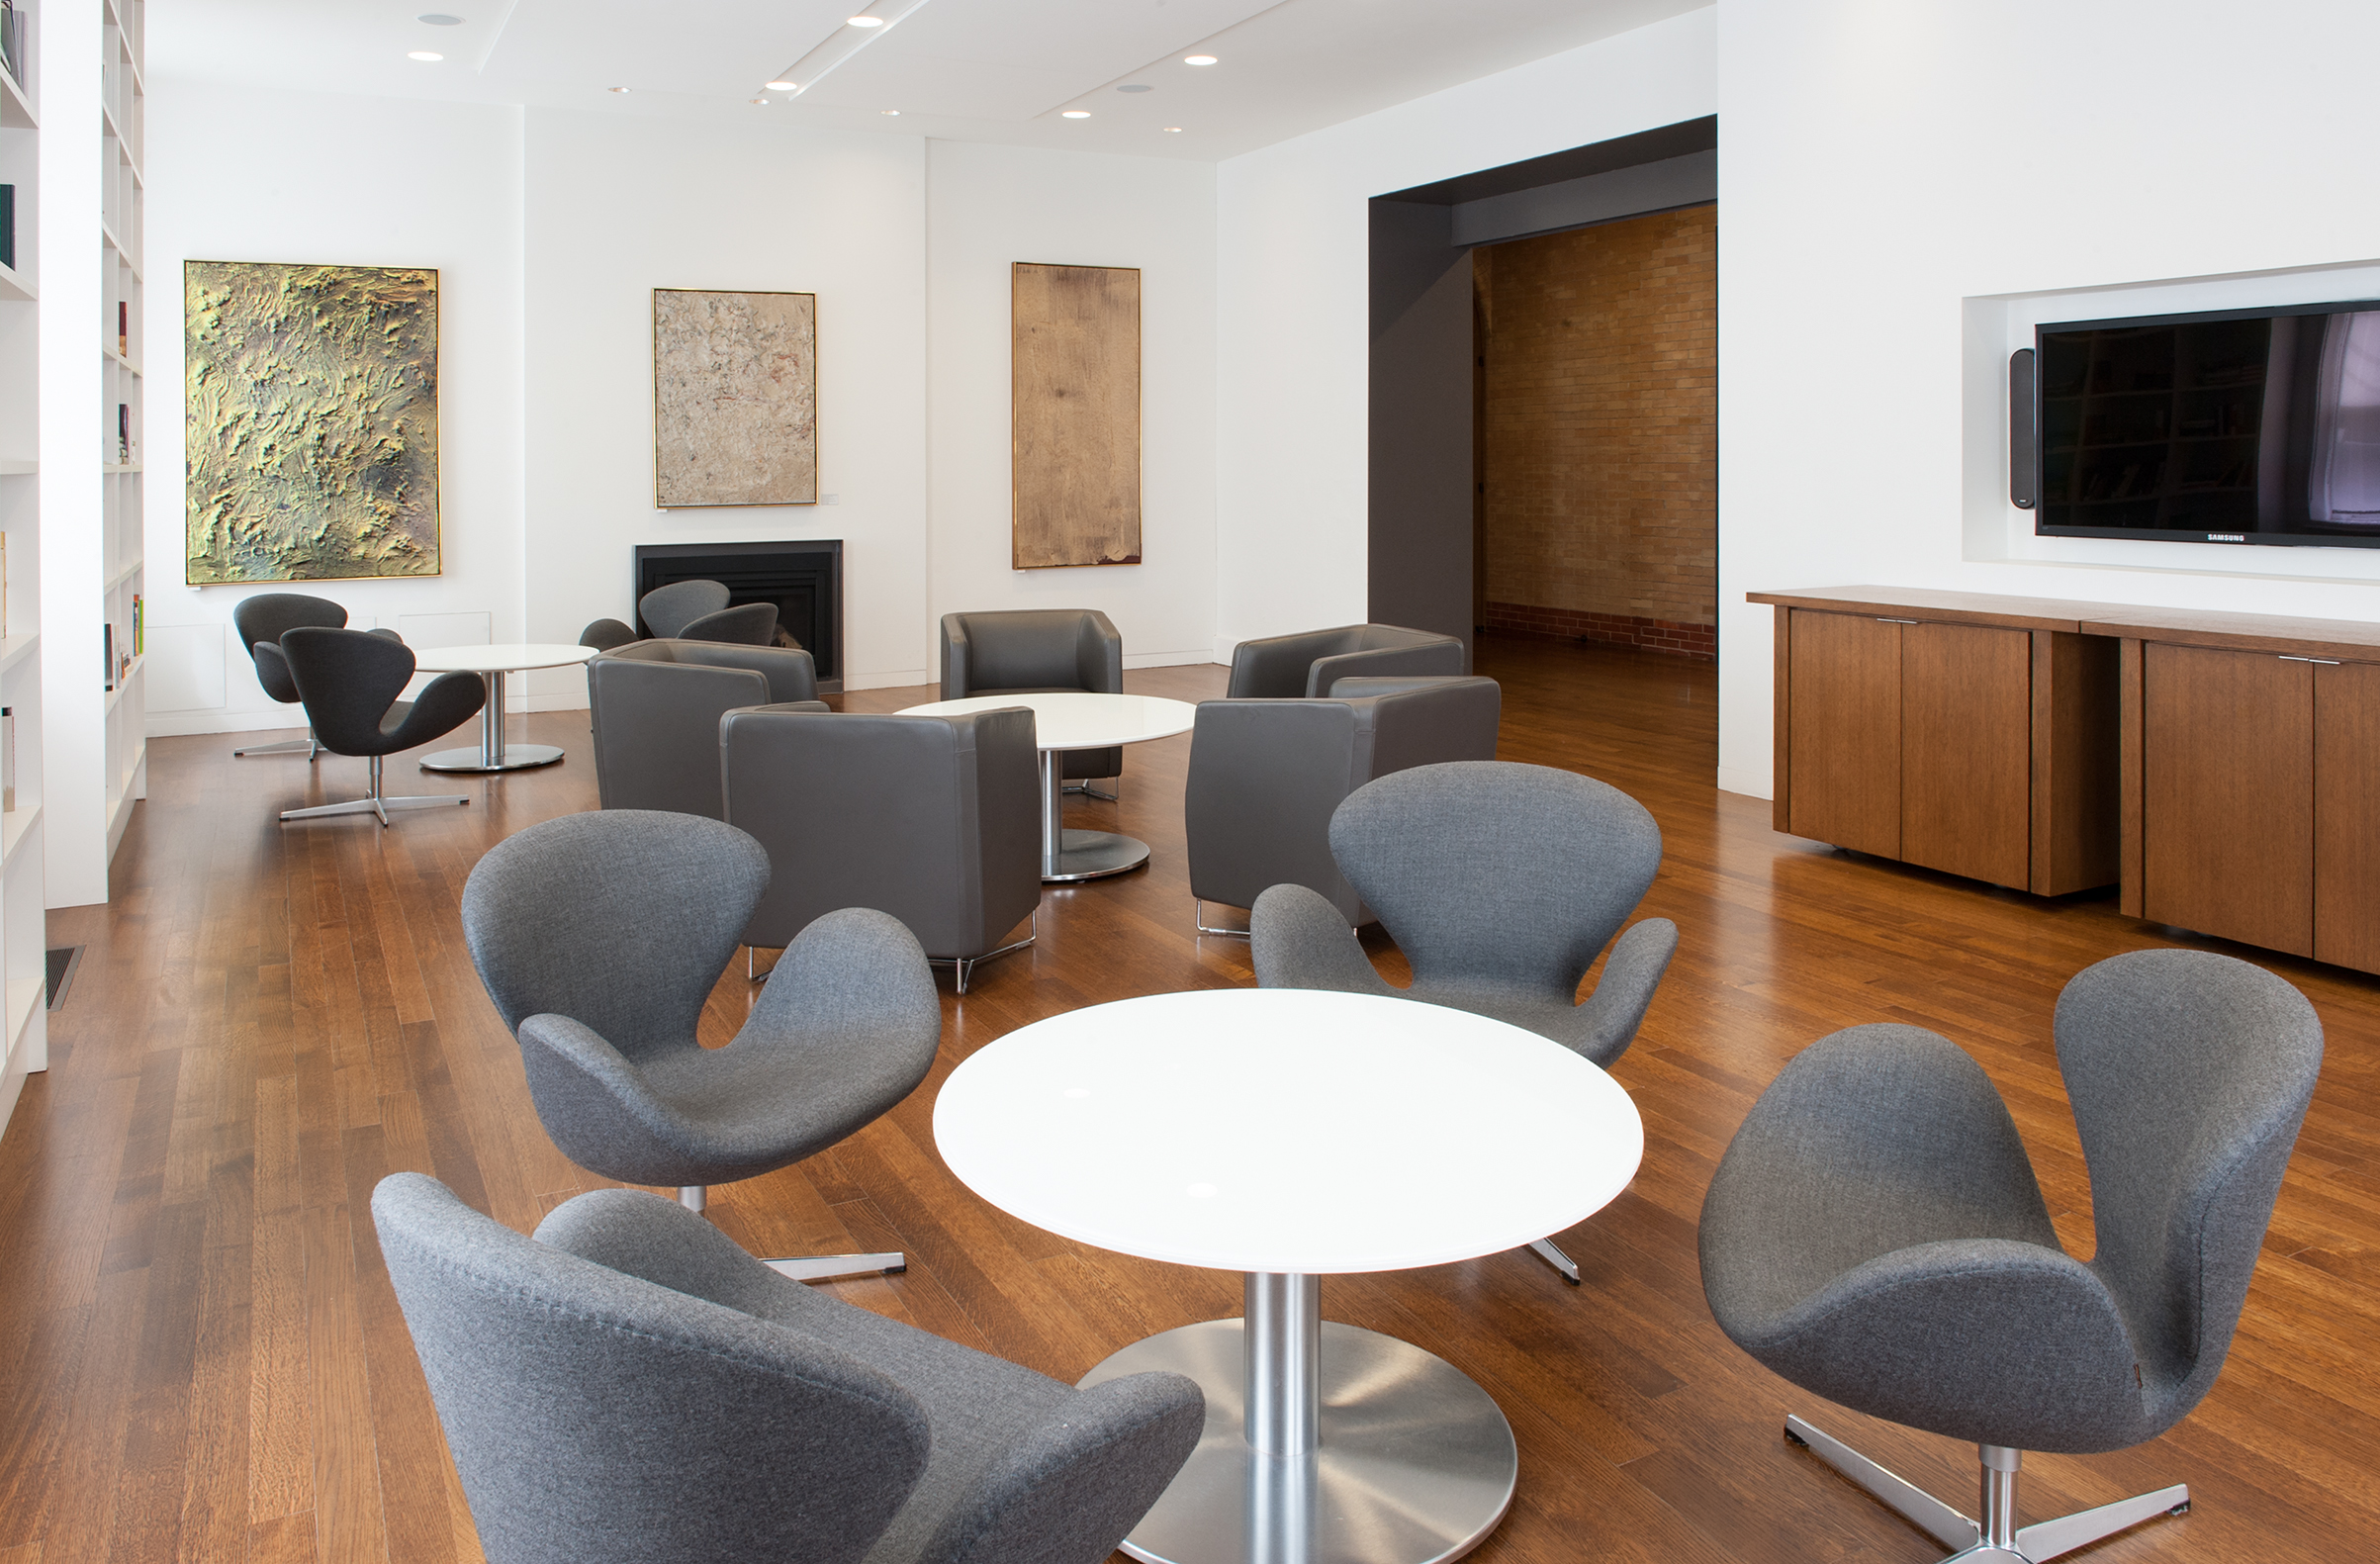 Use of The Library is included with boardroom rentals